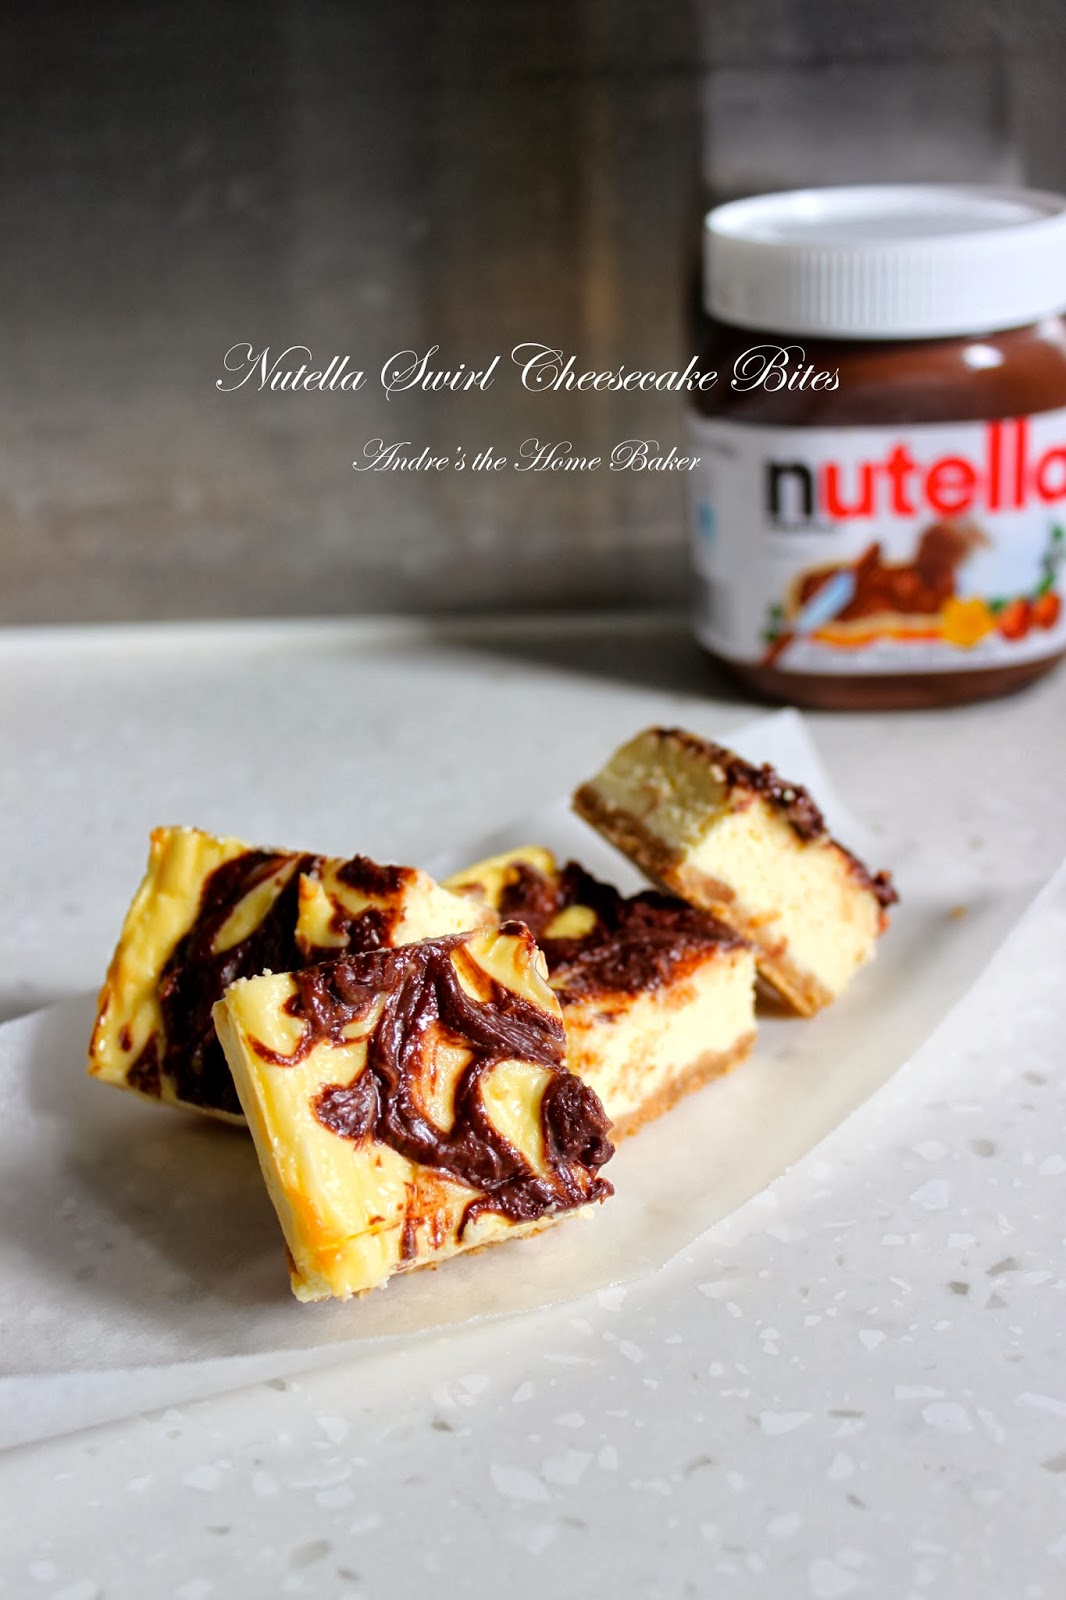 andre 39 s the home baker nutella swirl cheesecake bites. Black Bedroom Furniture Sets. Home Design Ideas